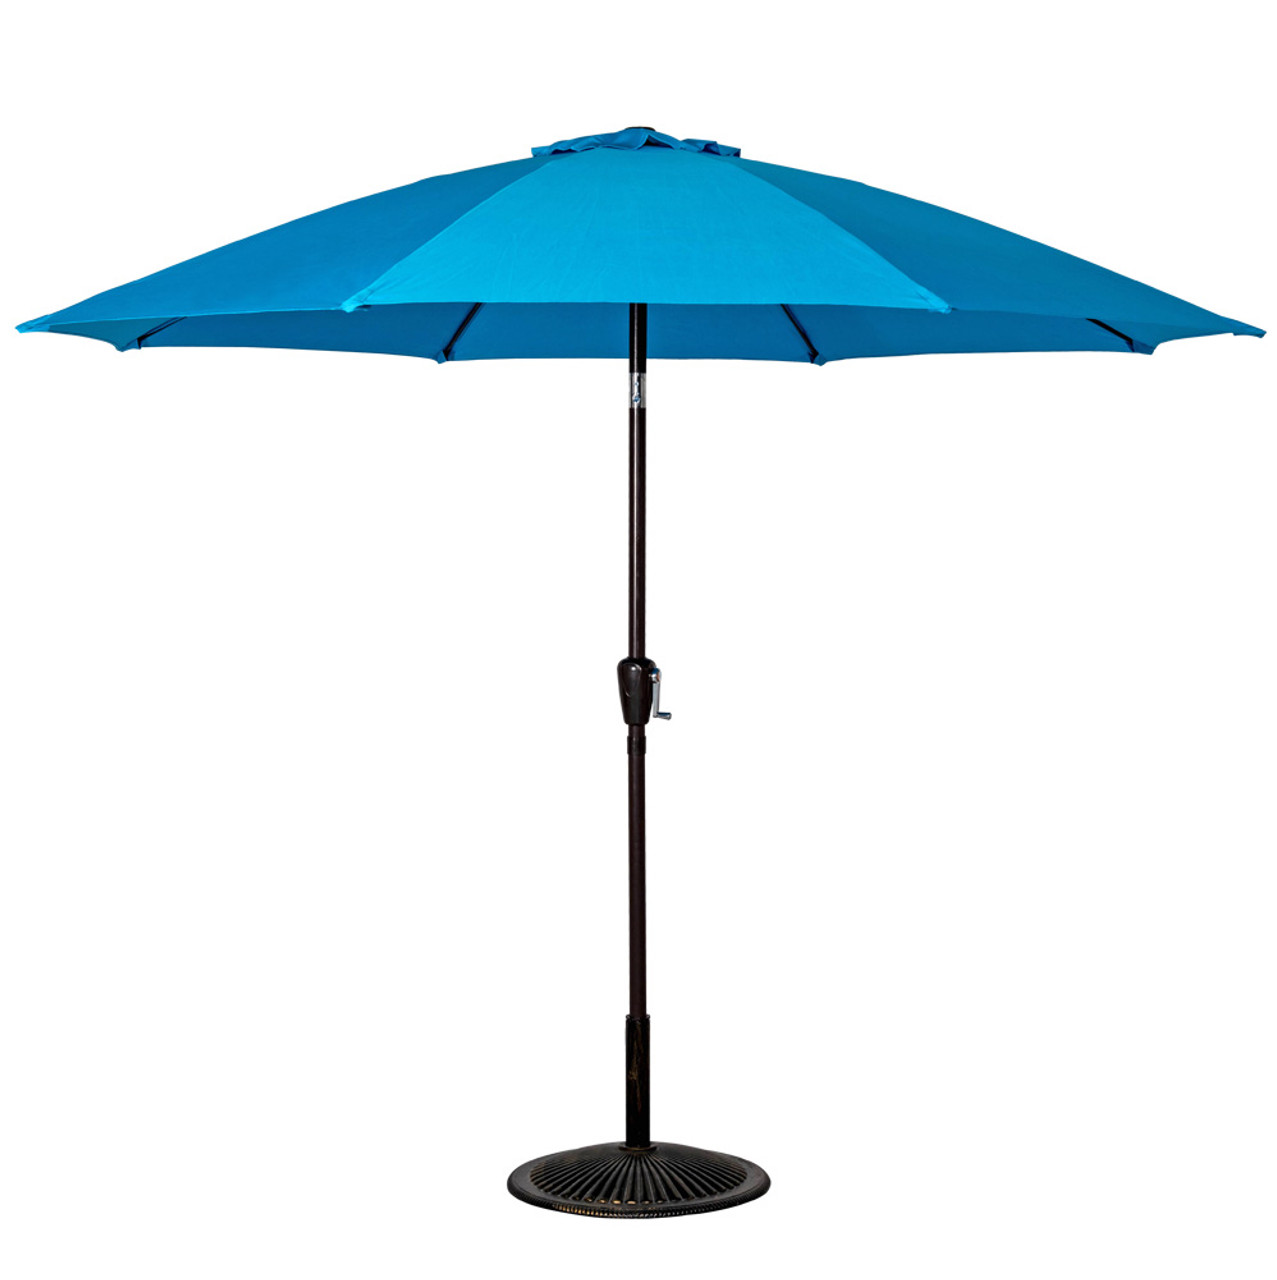 9 Feet Aluminum Patio Umbrella With Crank And Push Button Tilt(Turquoise)